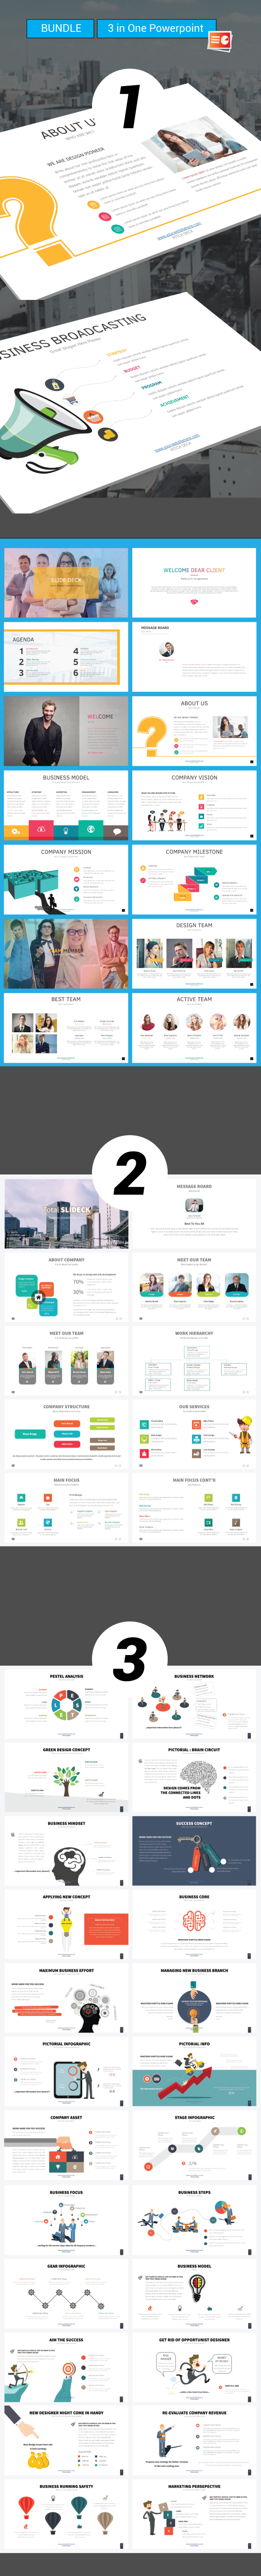 Trideck Bundle Powerpoint 3 in One - Business PowerPoint Templates